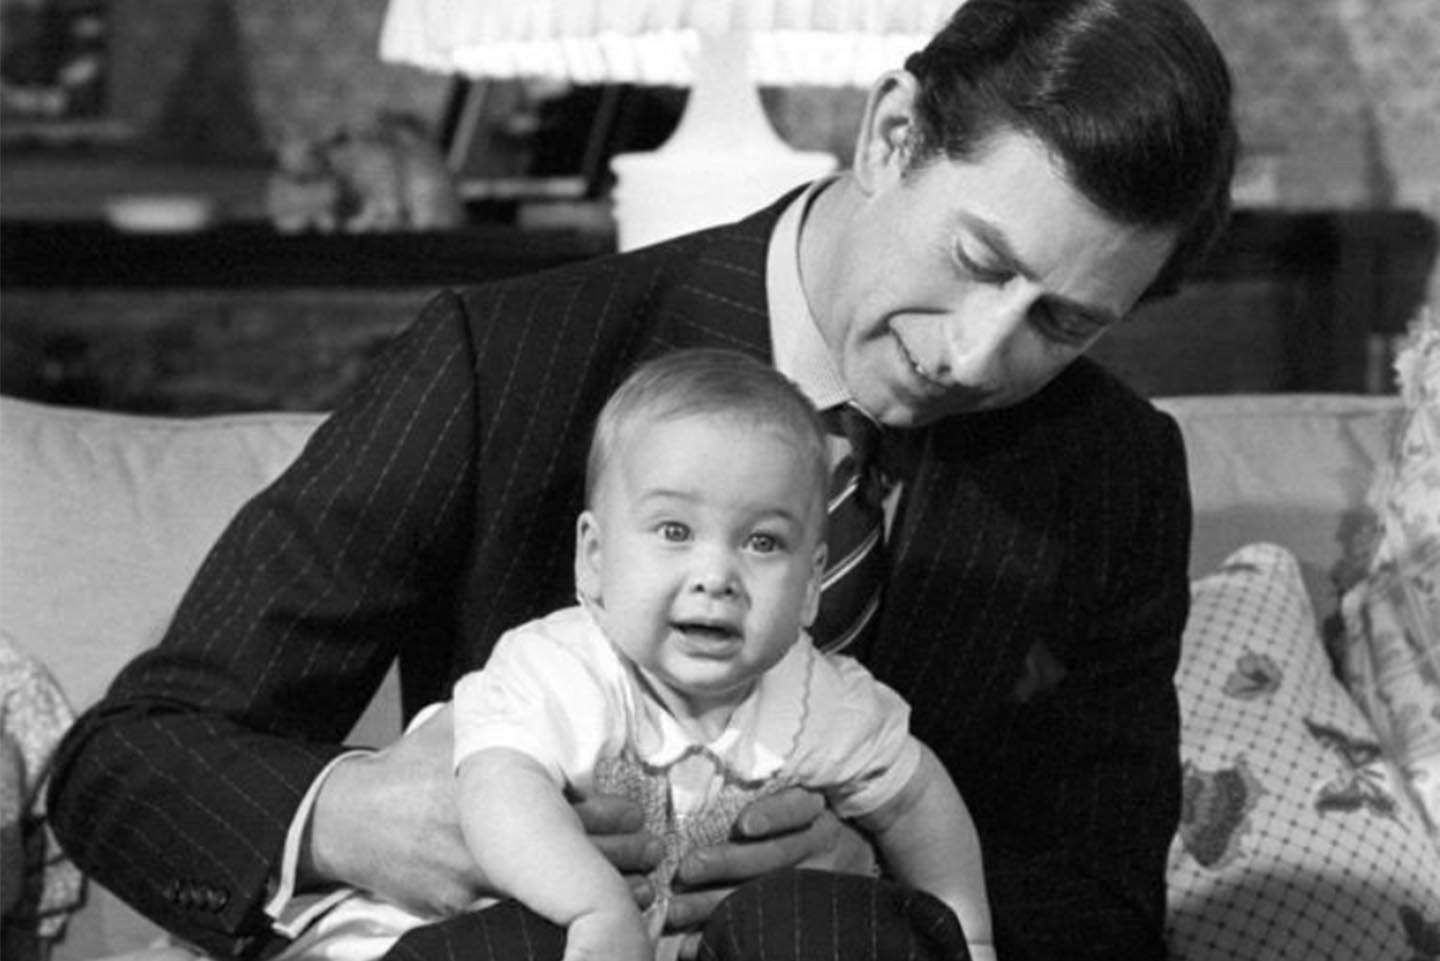 In honour of Prince William's birthday, The Prince of Wales and The Duchess of Cornwall shared a photo of a young Prince William on the lap of his father. Photo: The Prince of Wales and The Duchess of Cornwall/Twitter